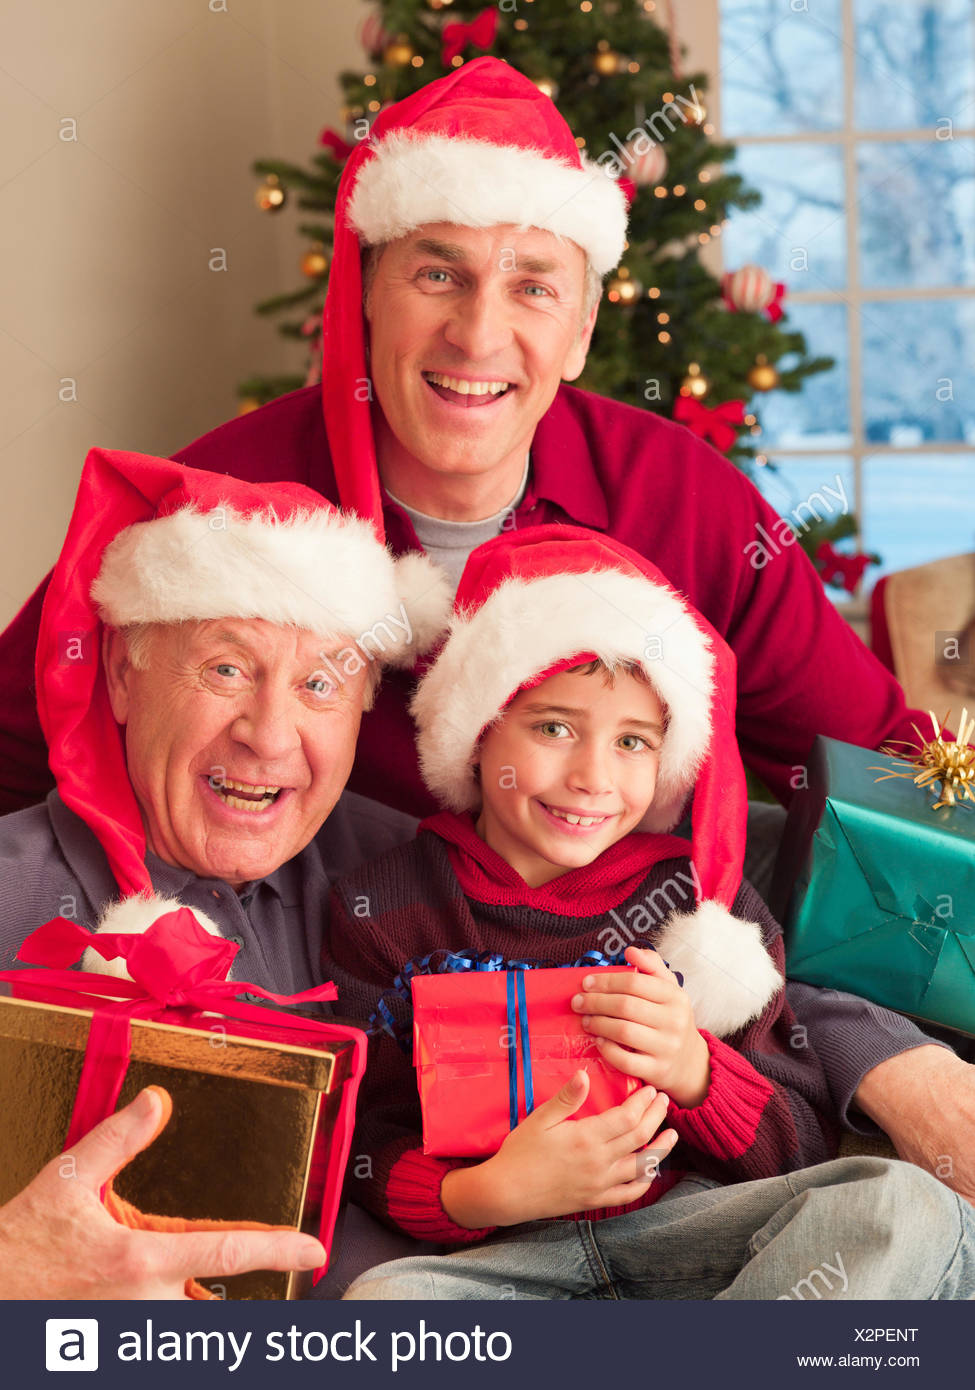 Multi-generation family wearing santa hats and holding Christmas gifts - Stock Image